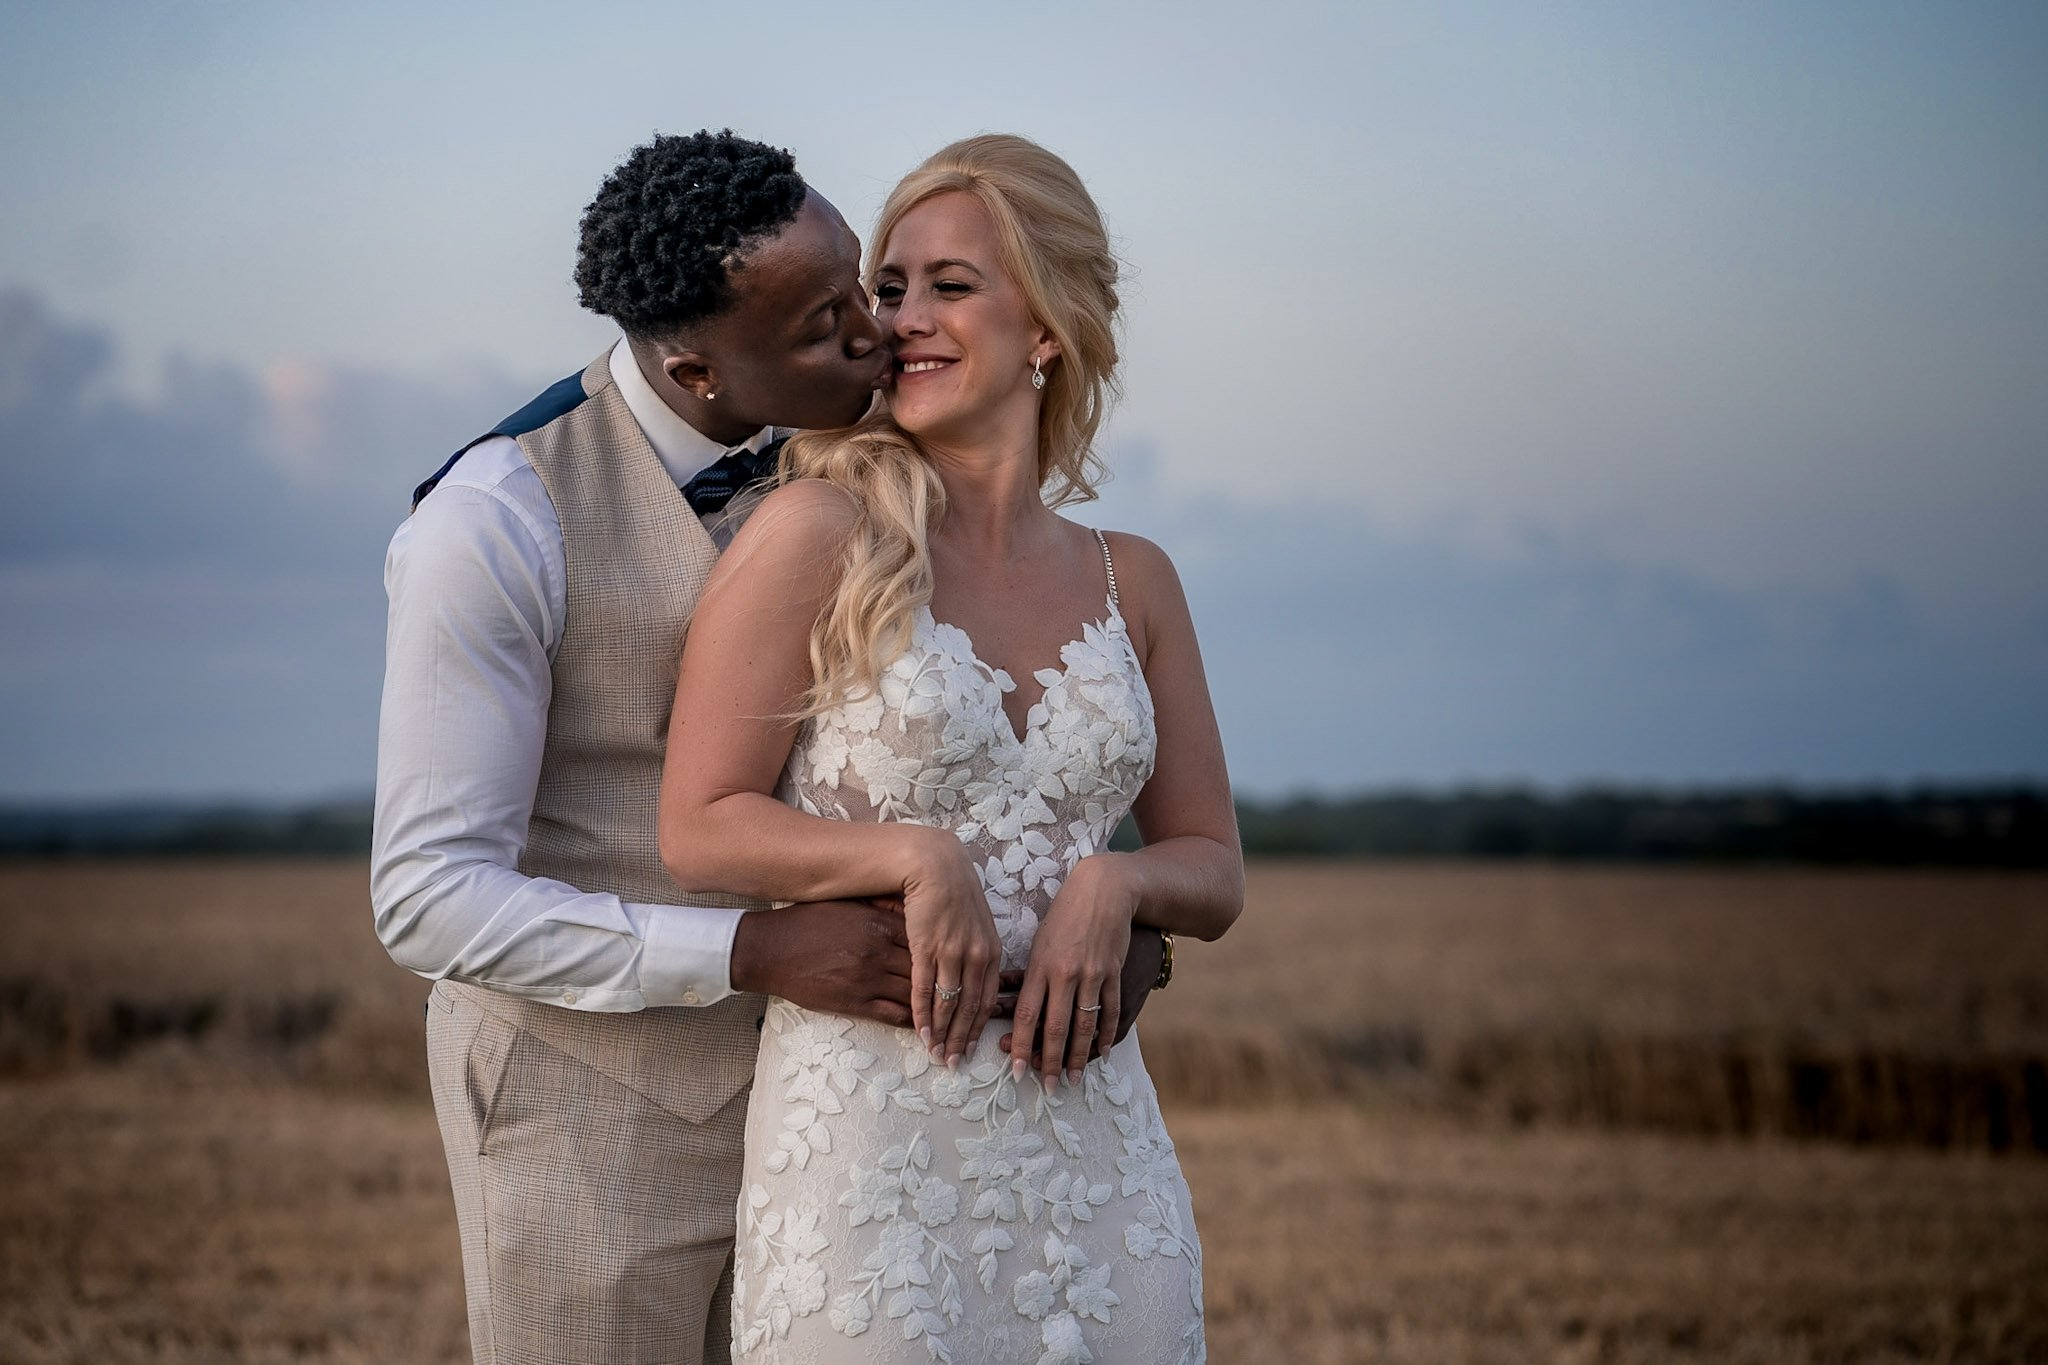 Your Favourite Frame YFFUK Mwasuku Norton Fields Atherstone sunset in front of the wheat fields blue sky and green horizon cuddles and kisses on a wedding day